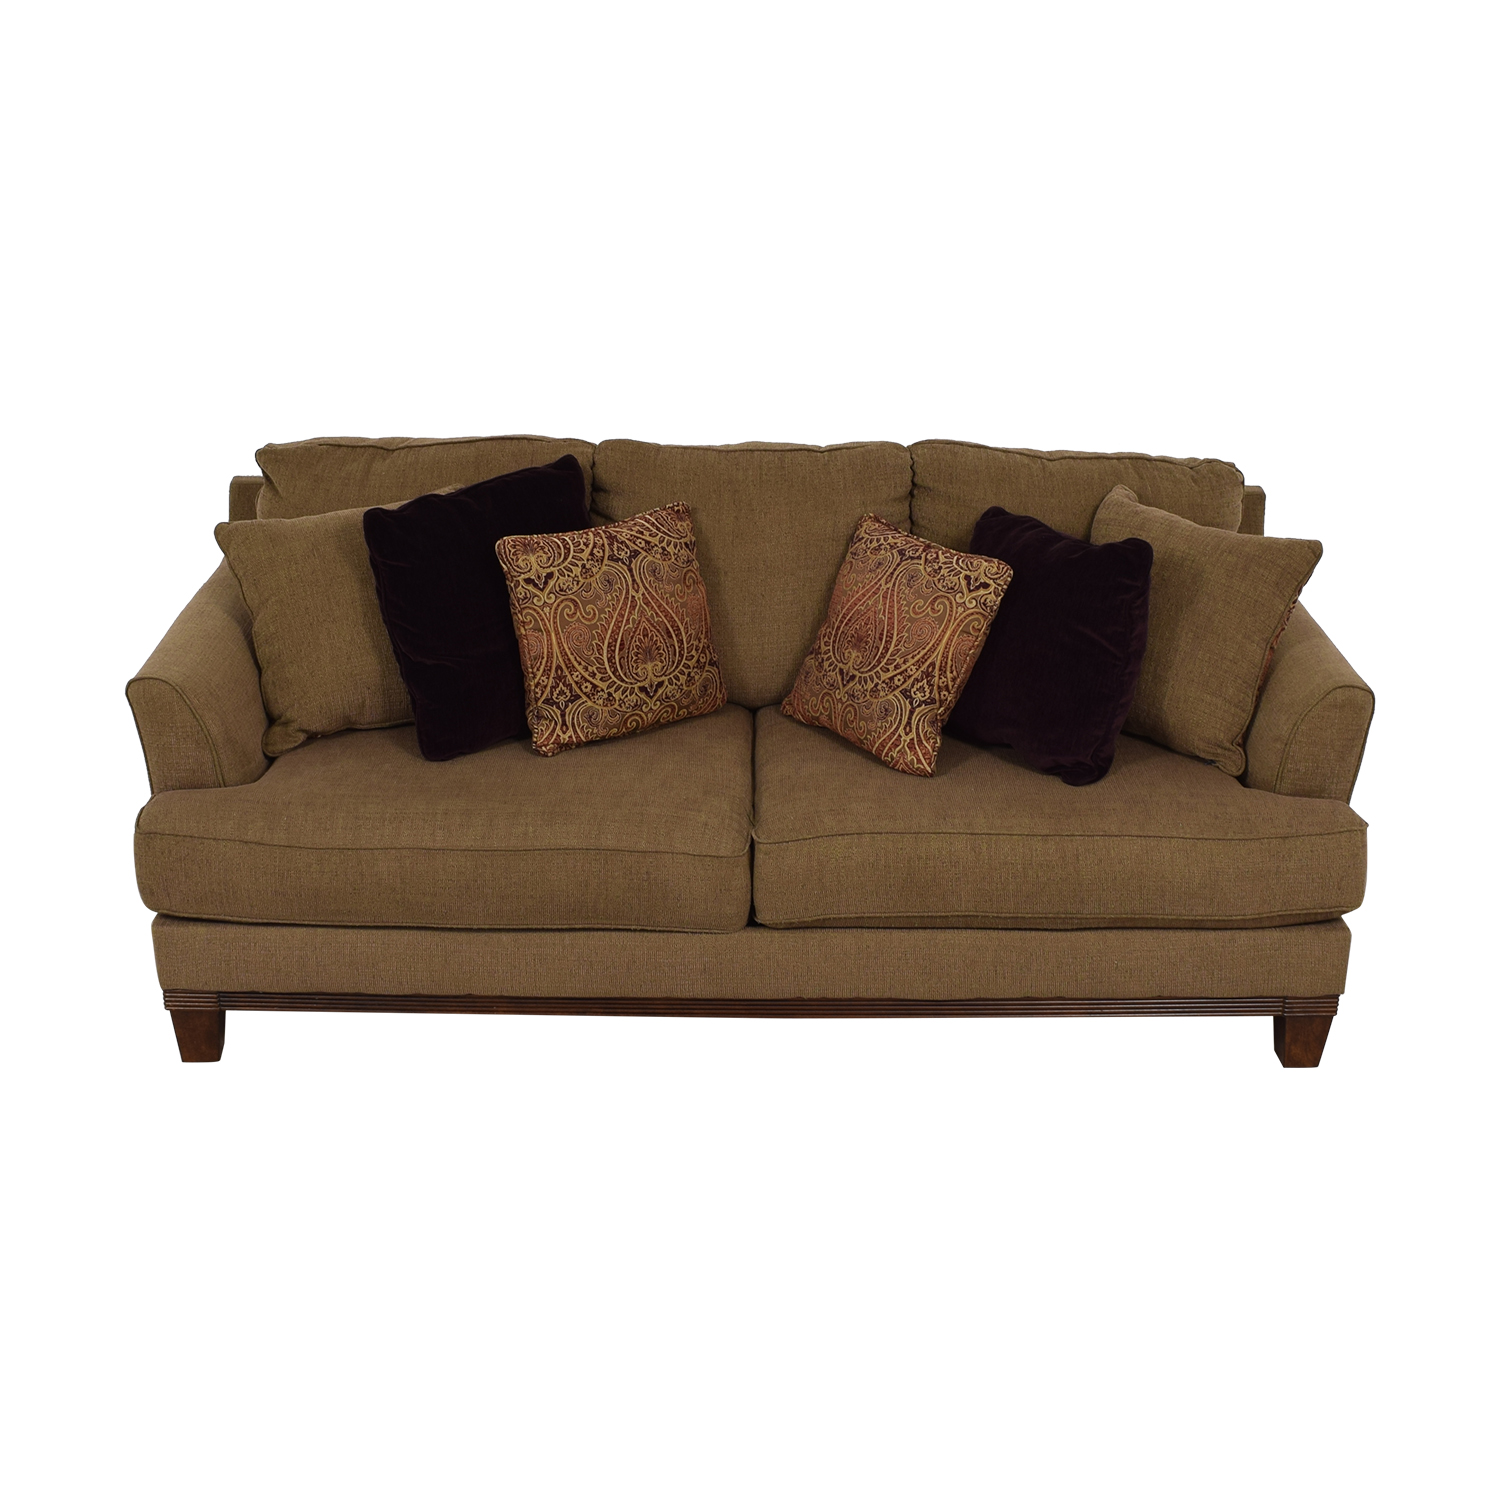 Ashley Furniture Brown Two Cushion Sofa Clic Sofas